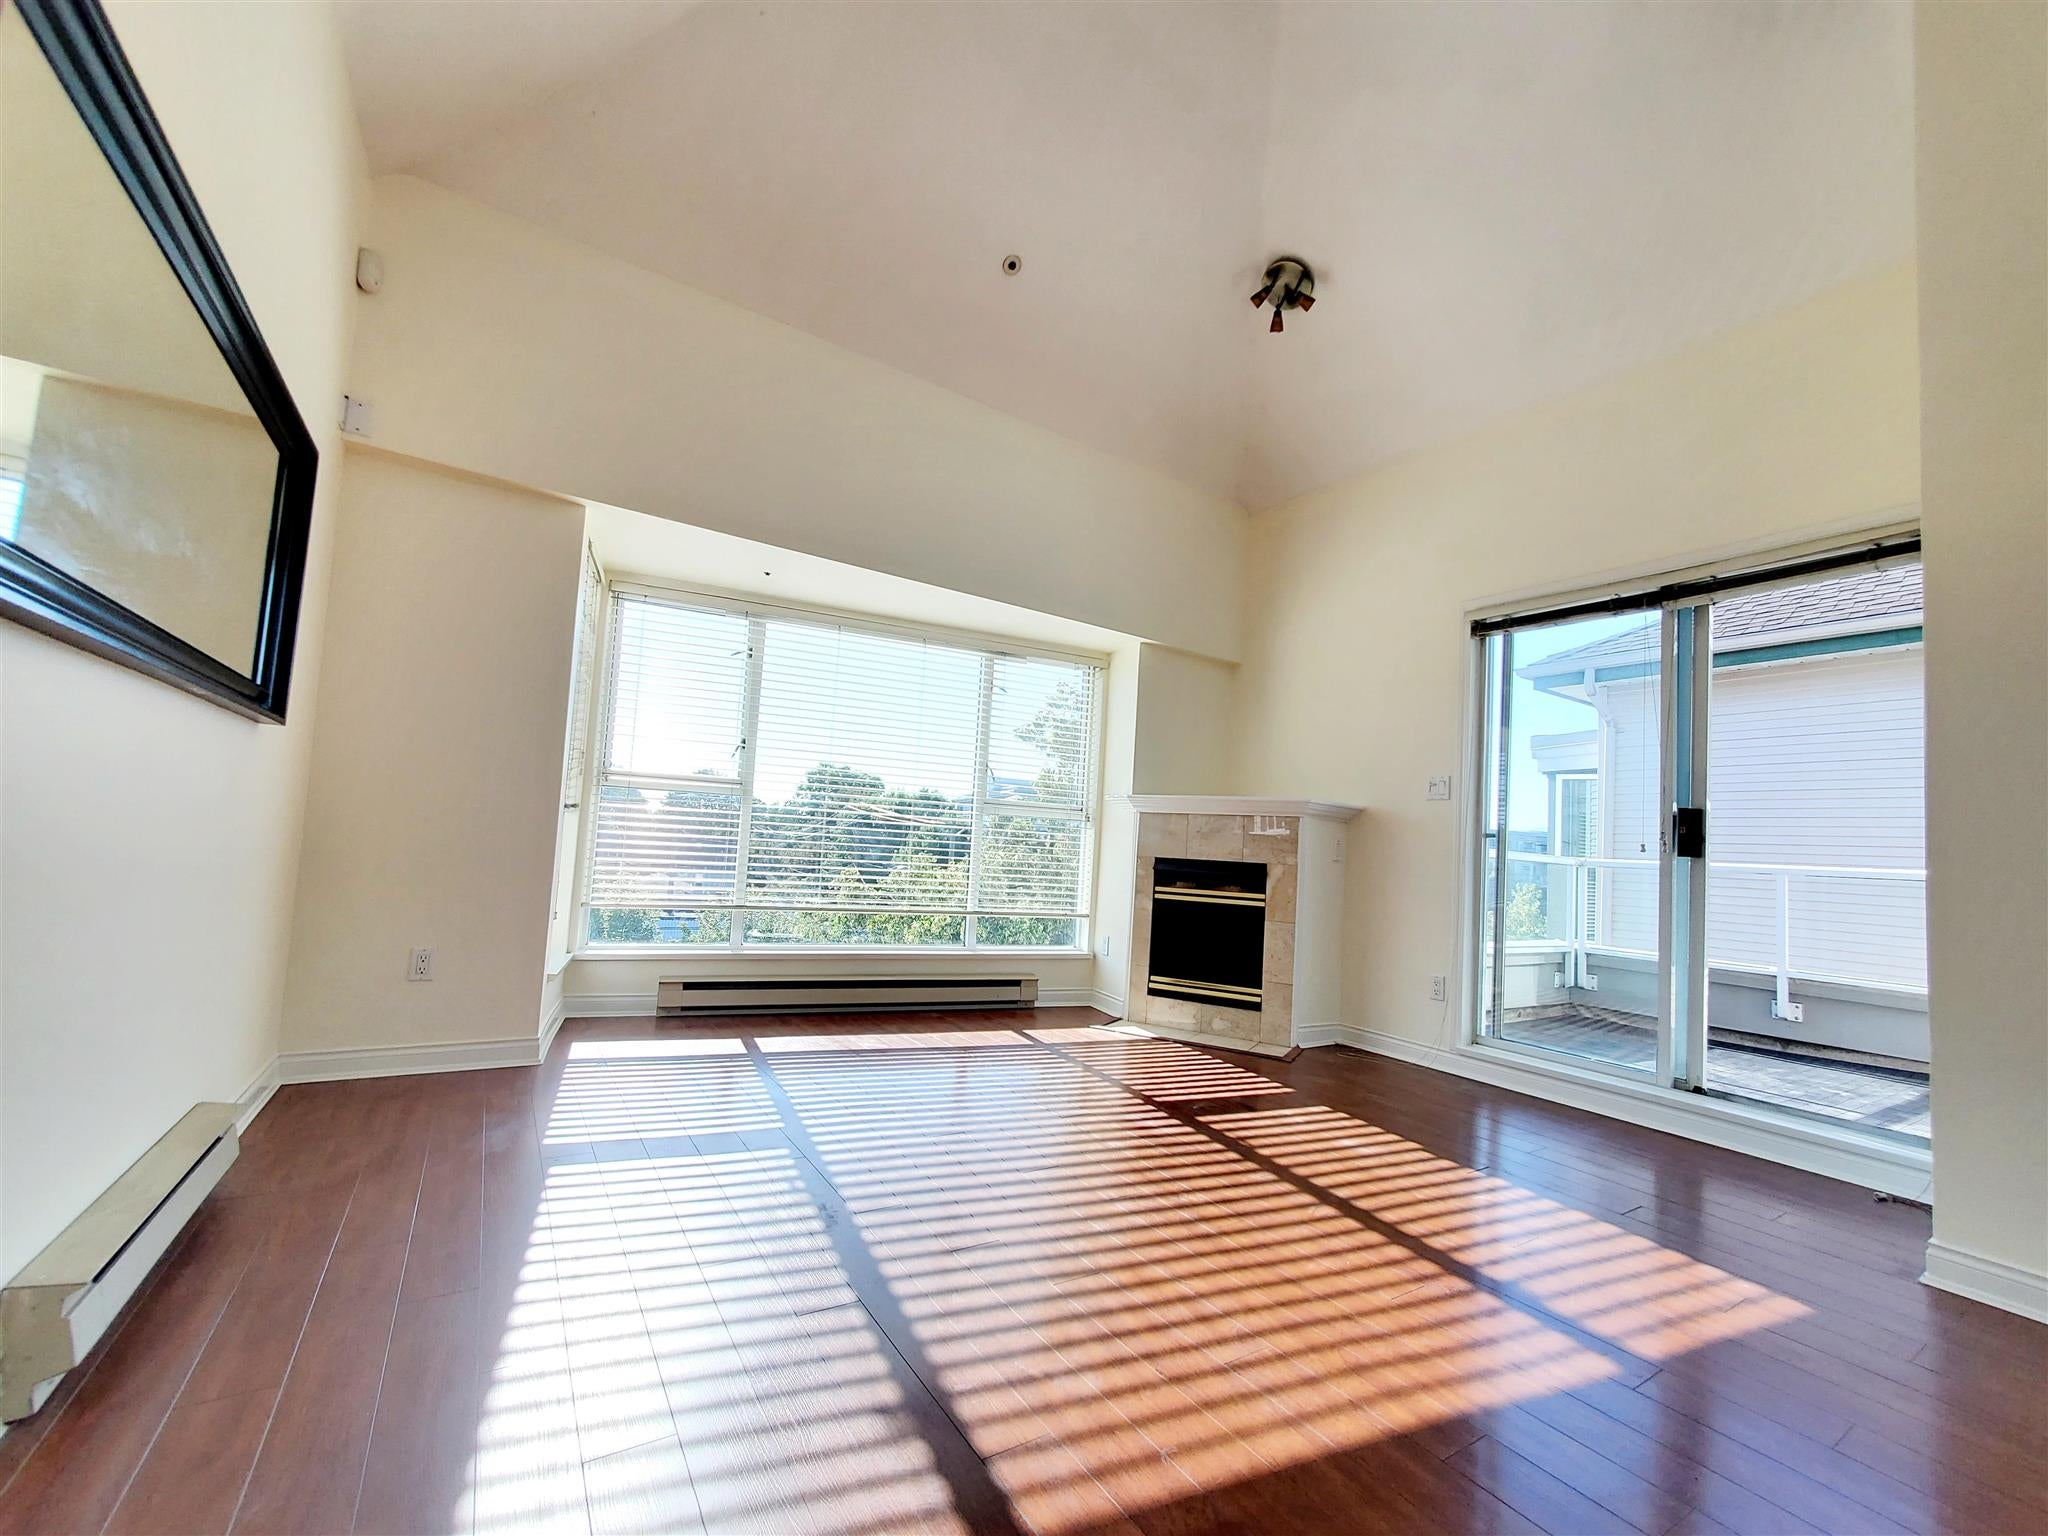 408 3480 MAIN STREET - Main Apartment/Condo for sale, 2 Bedrooms (R2573445) - #1